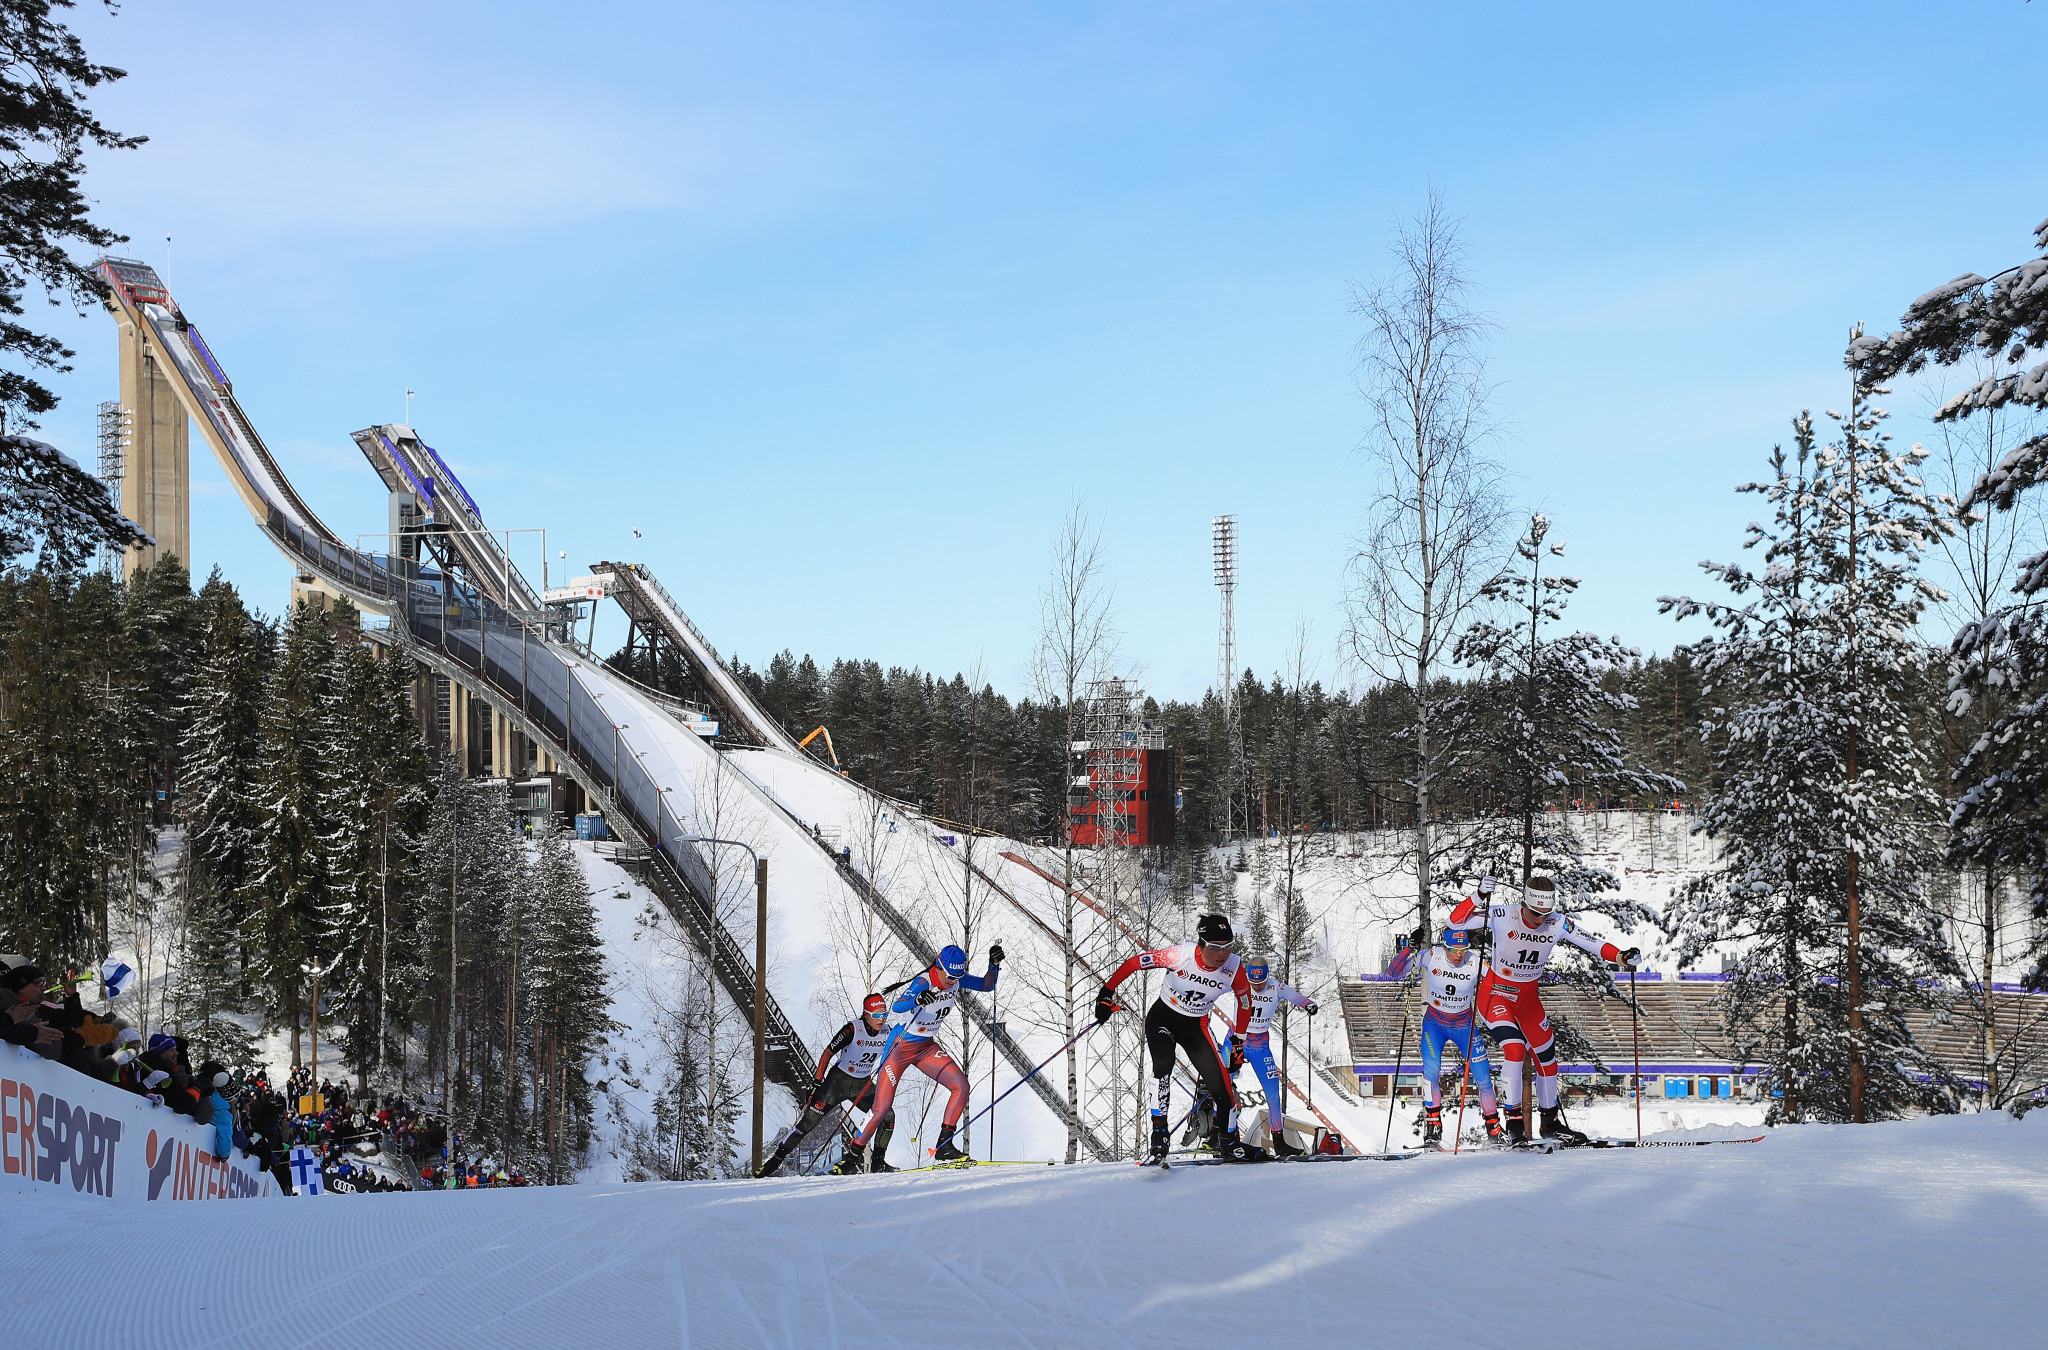 Finland named as sole host of 2021 Nordic Junior World Ski Championships after Poland pulls out